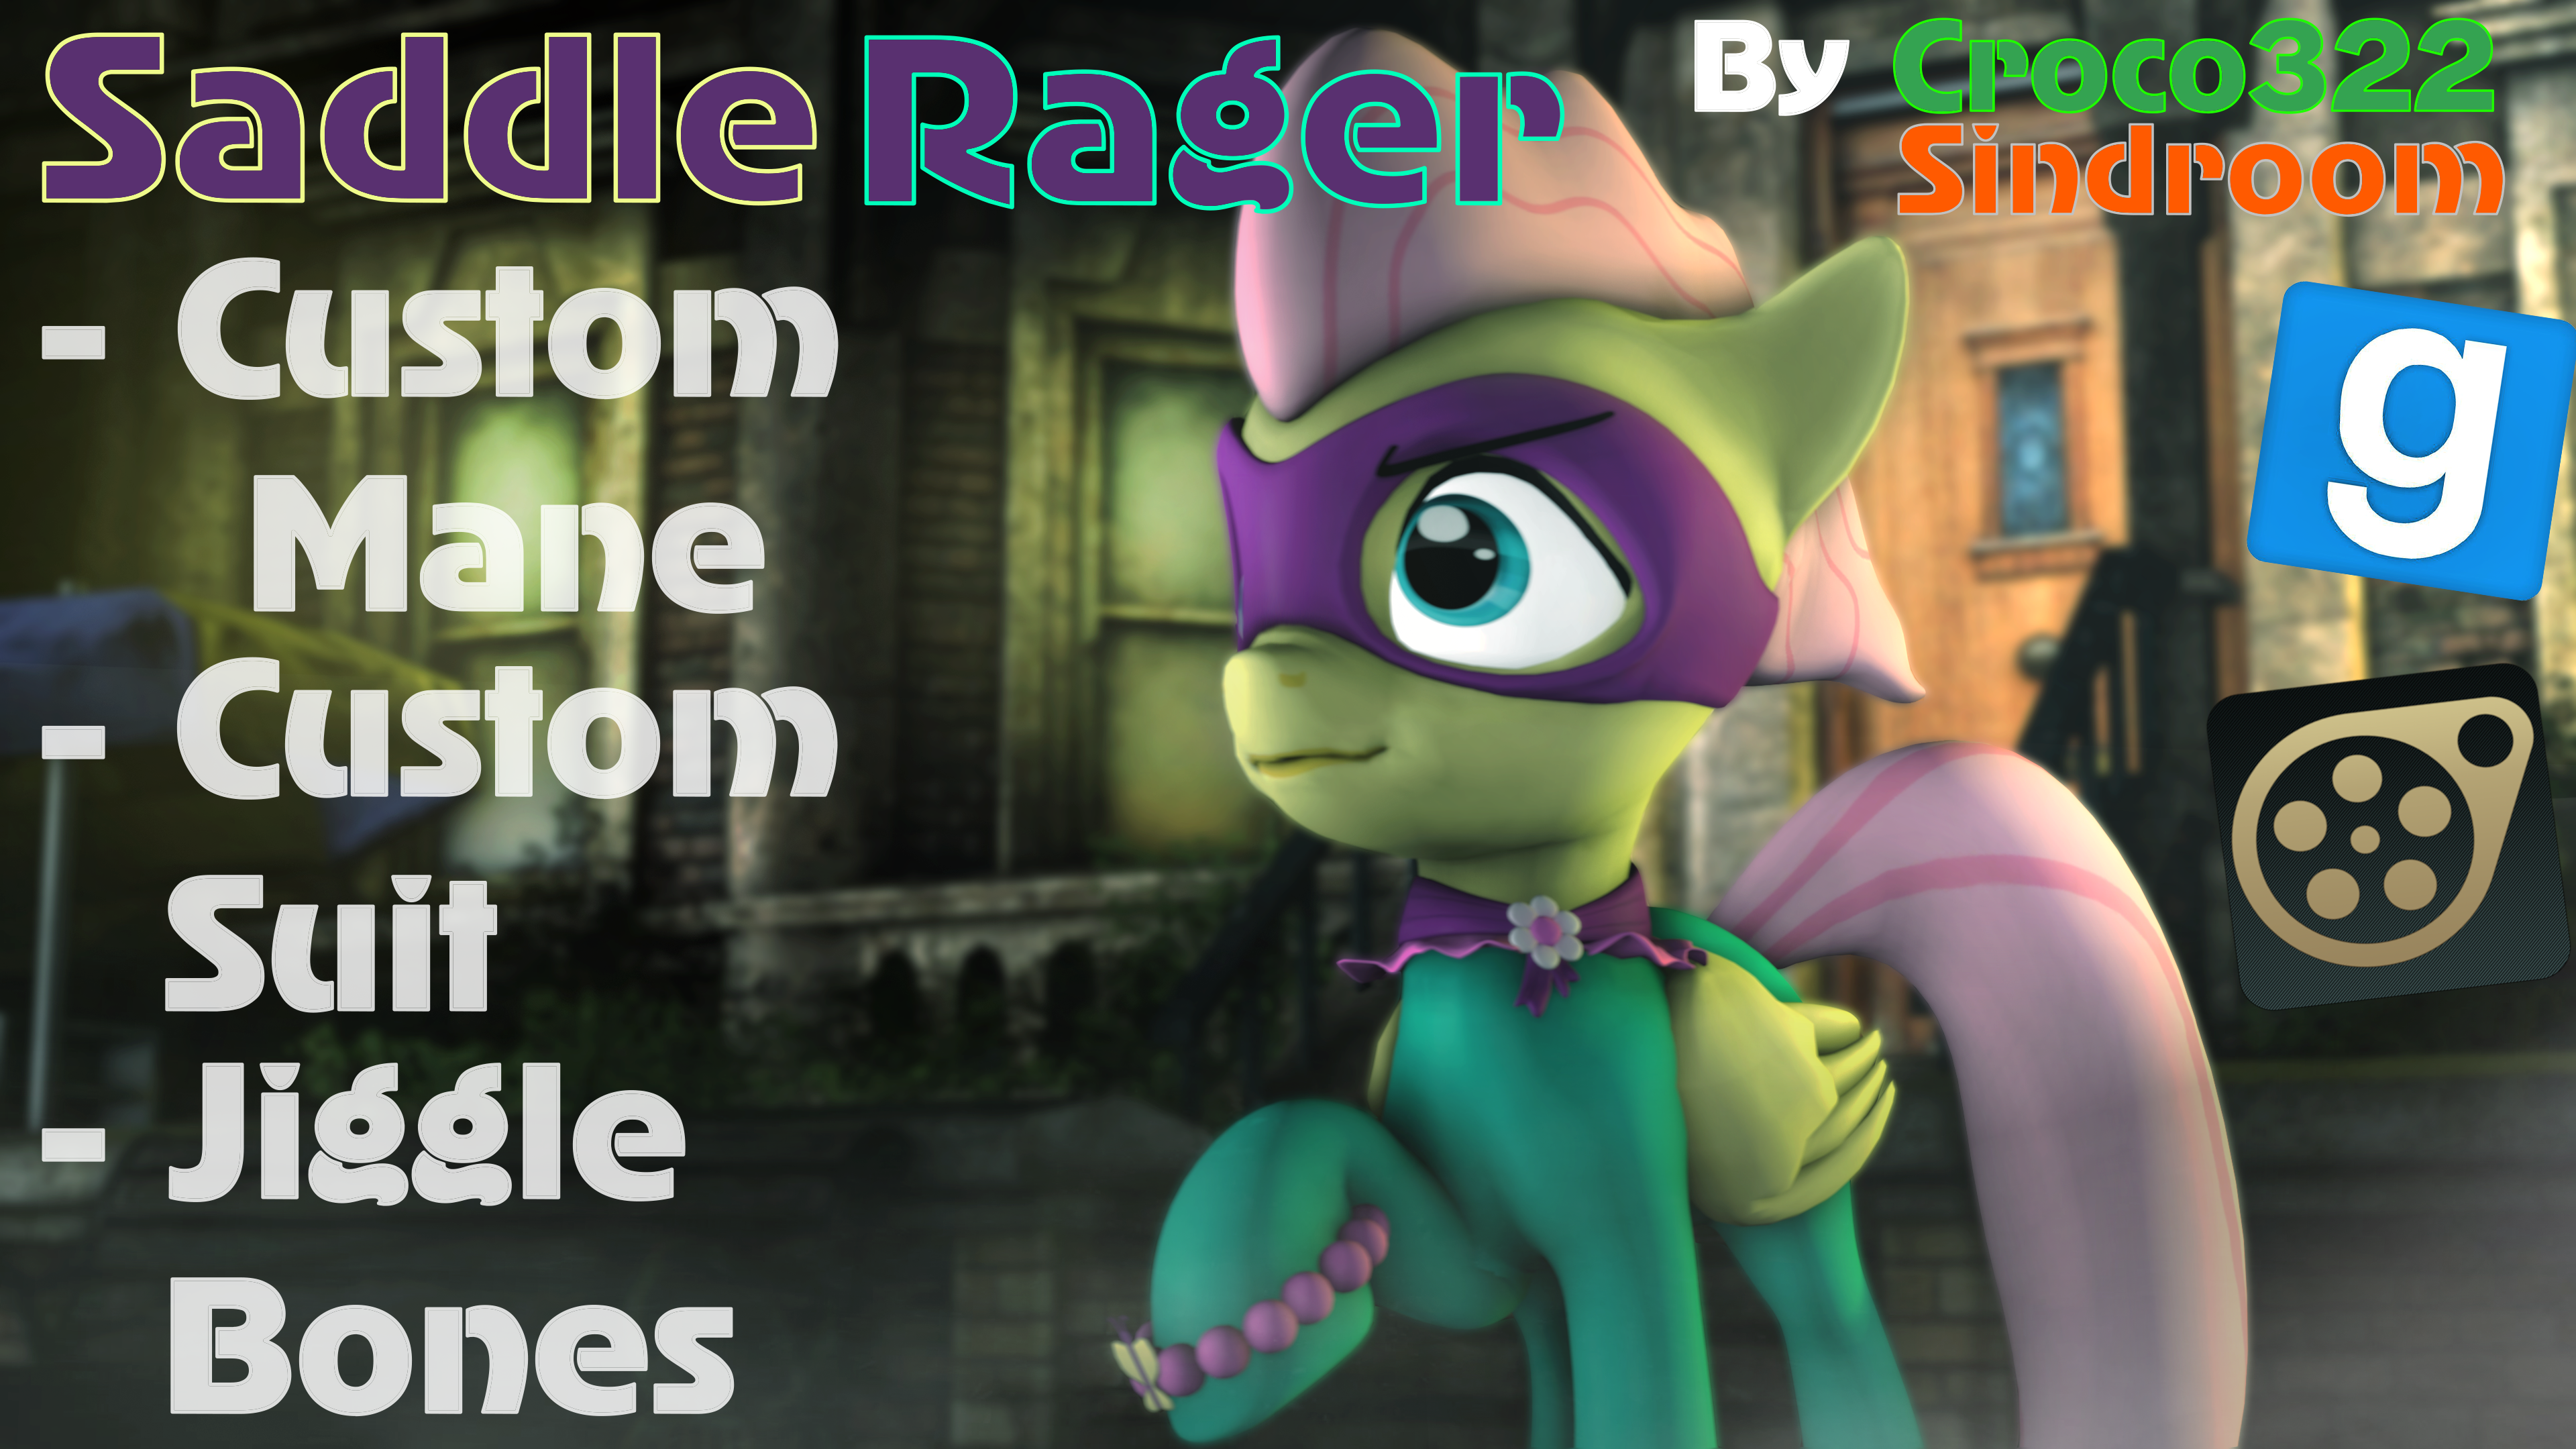 [DL] Saddle Rager model